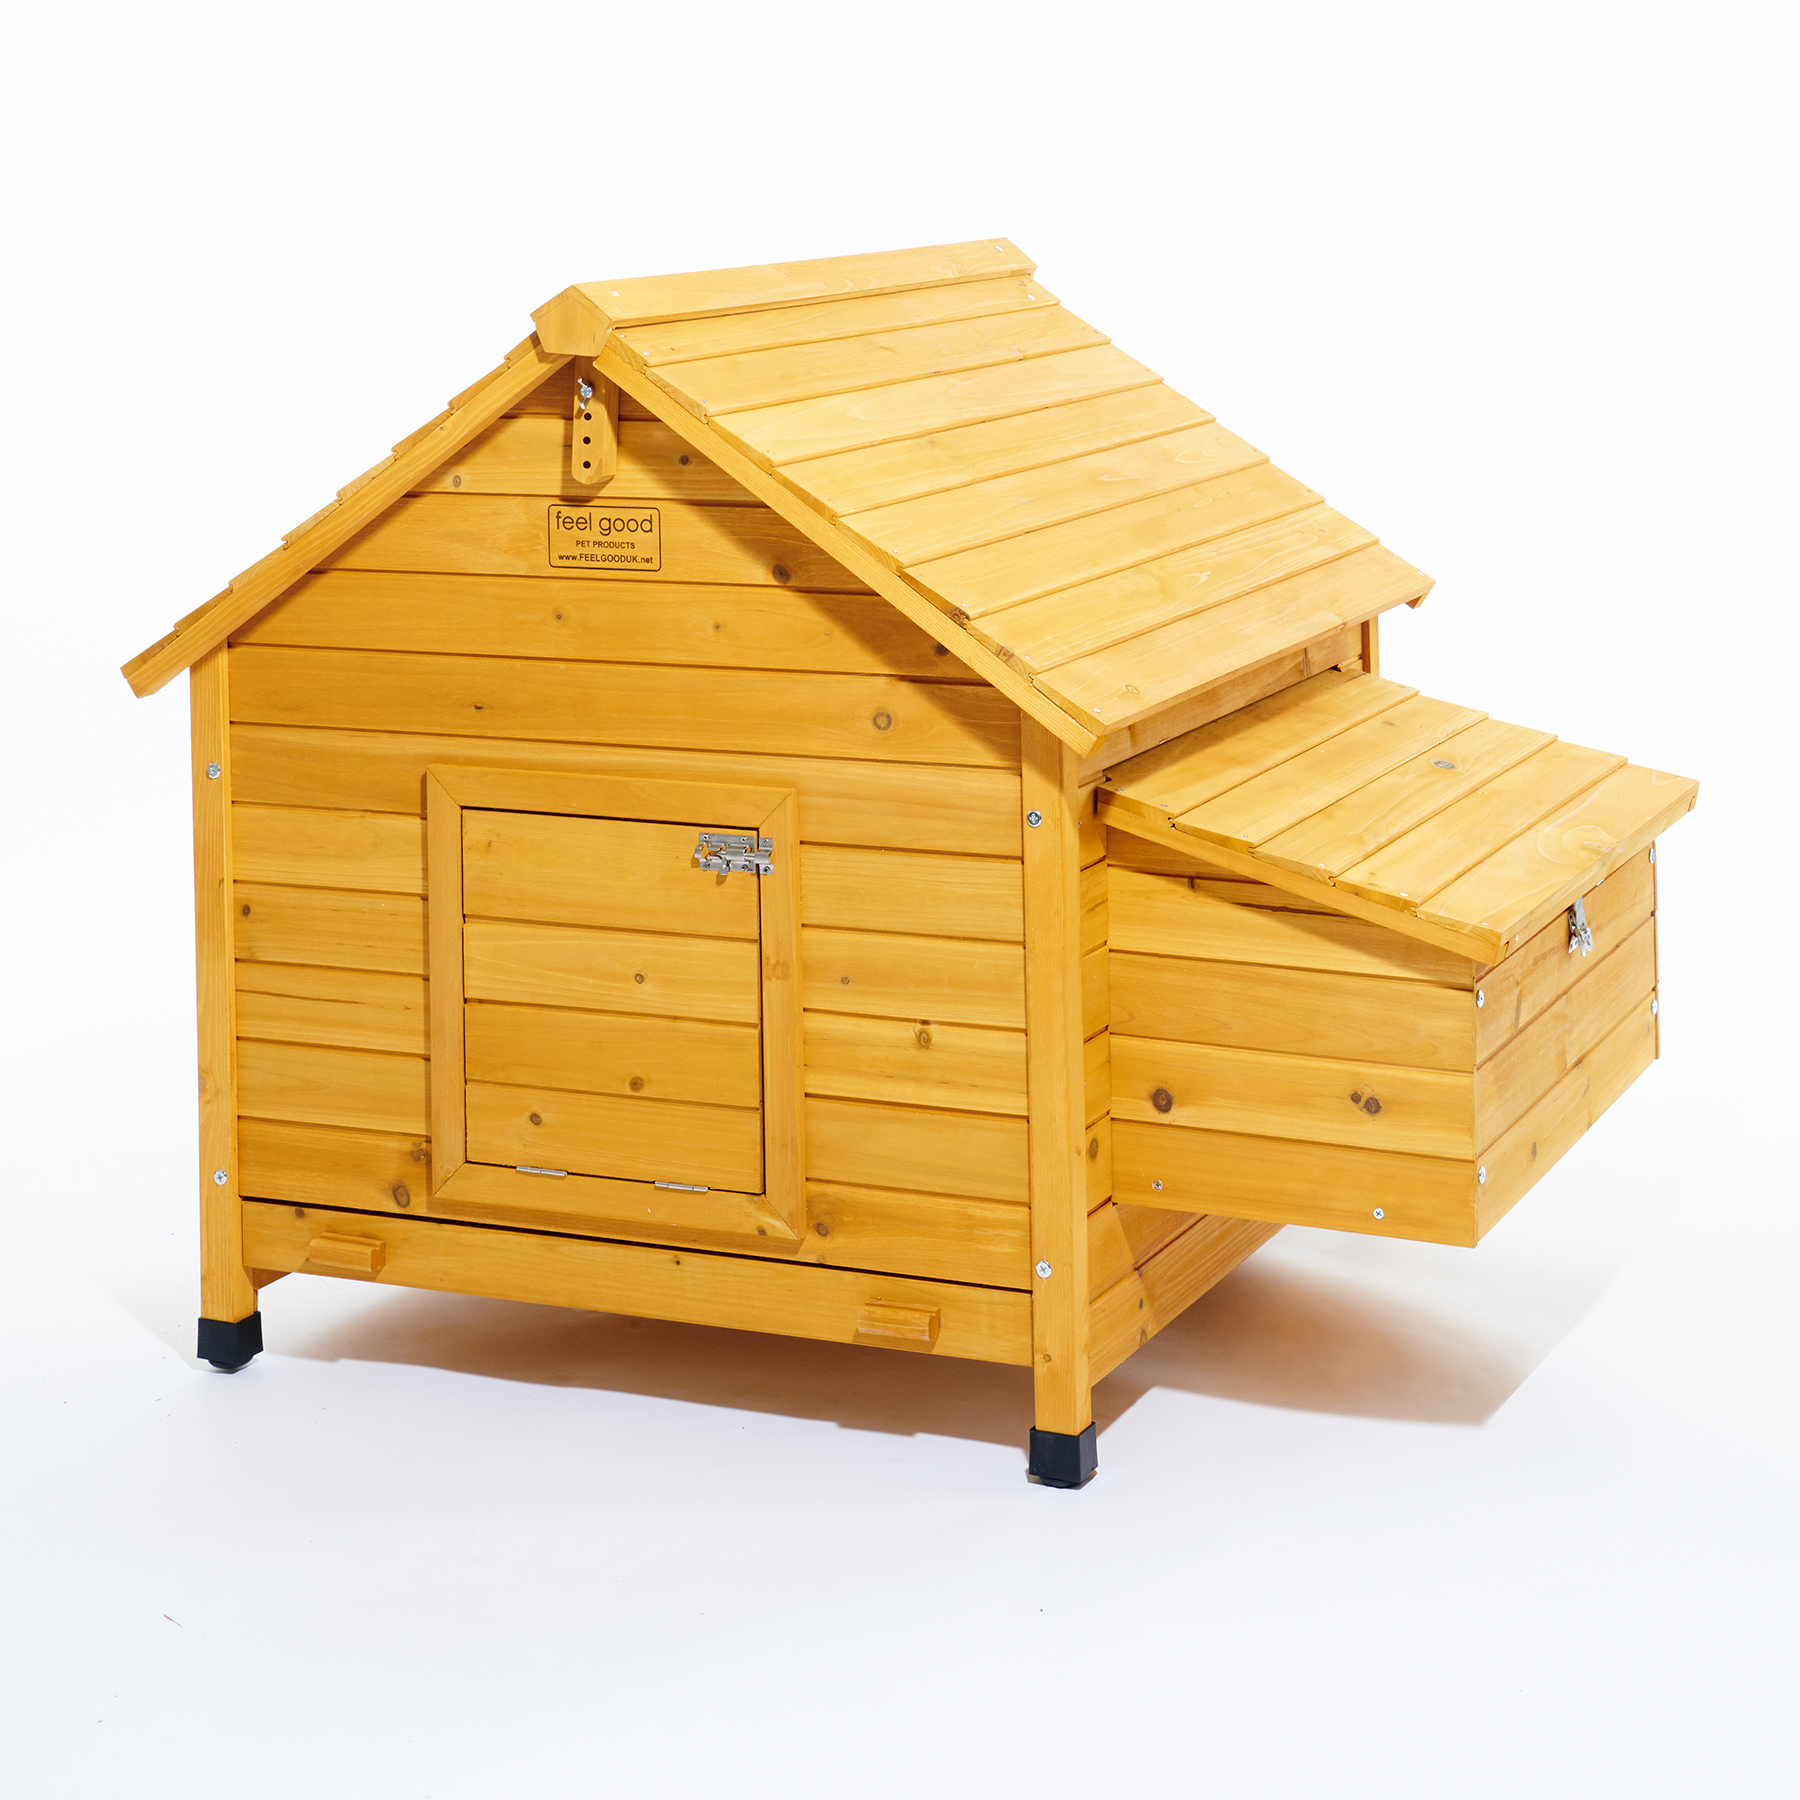 House Chicken Coop - Pre Order for Mid April